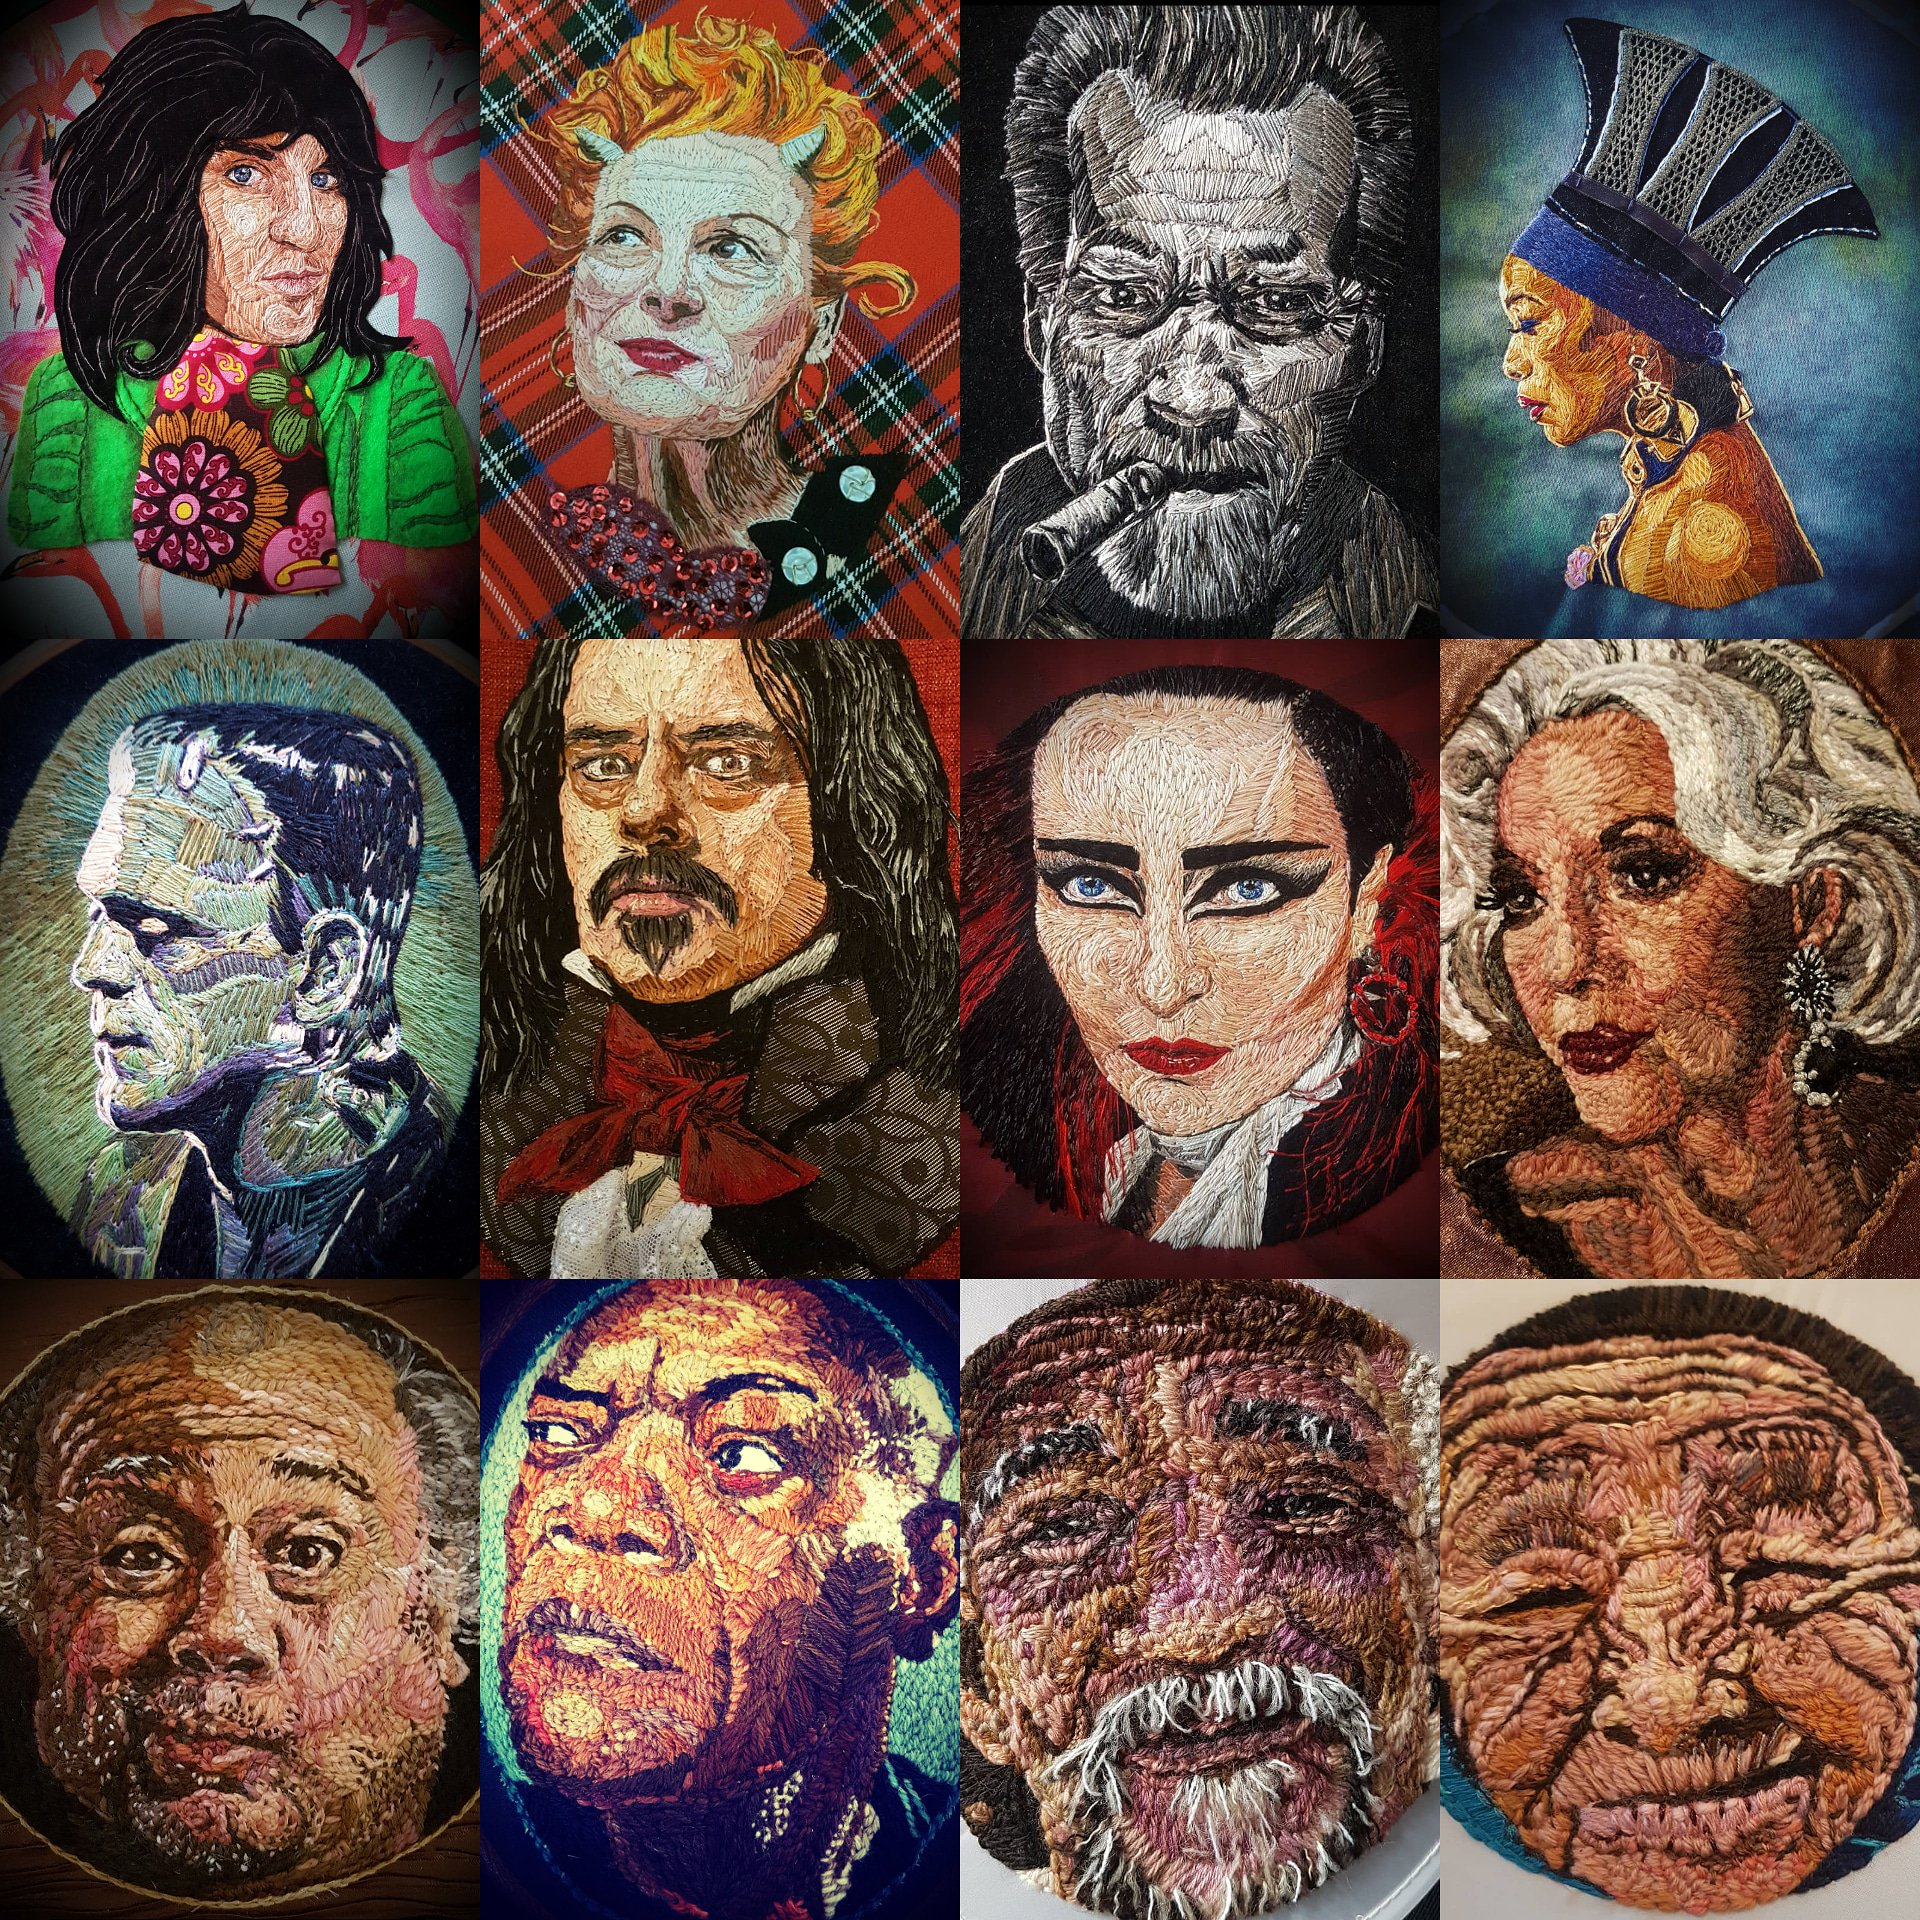 Happy 'World Embroidery Day' #embroidery #embroidered #portraiture https://t.co/THXn9cGlgA